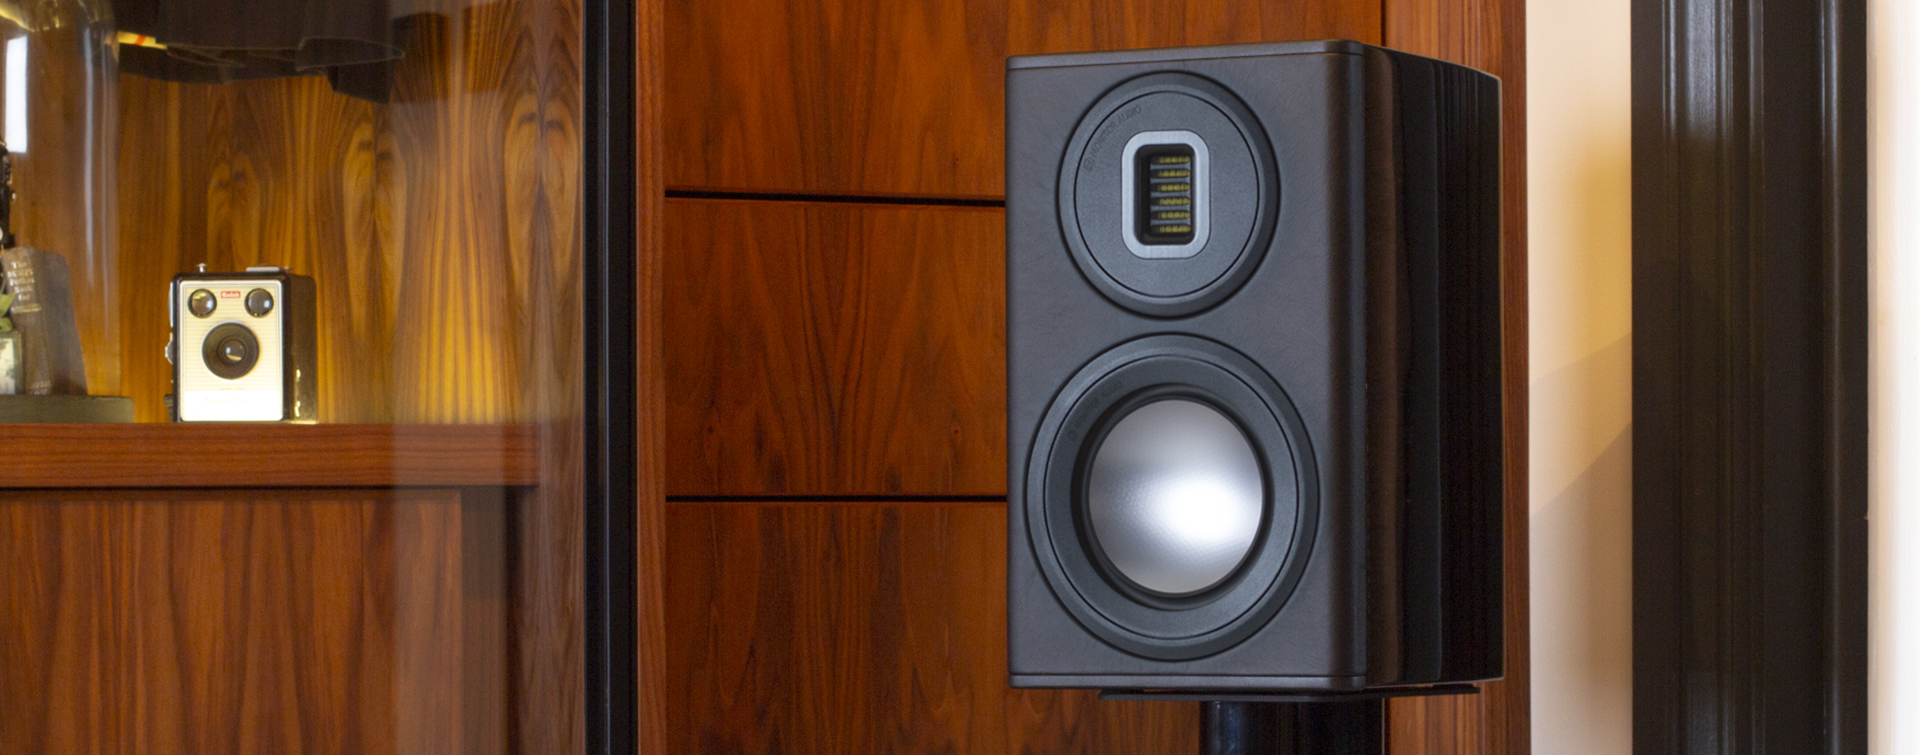 Platinum PL100 II bookshelf speakers, with grilles in three finishes.